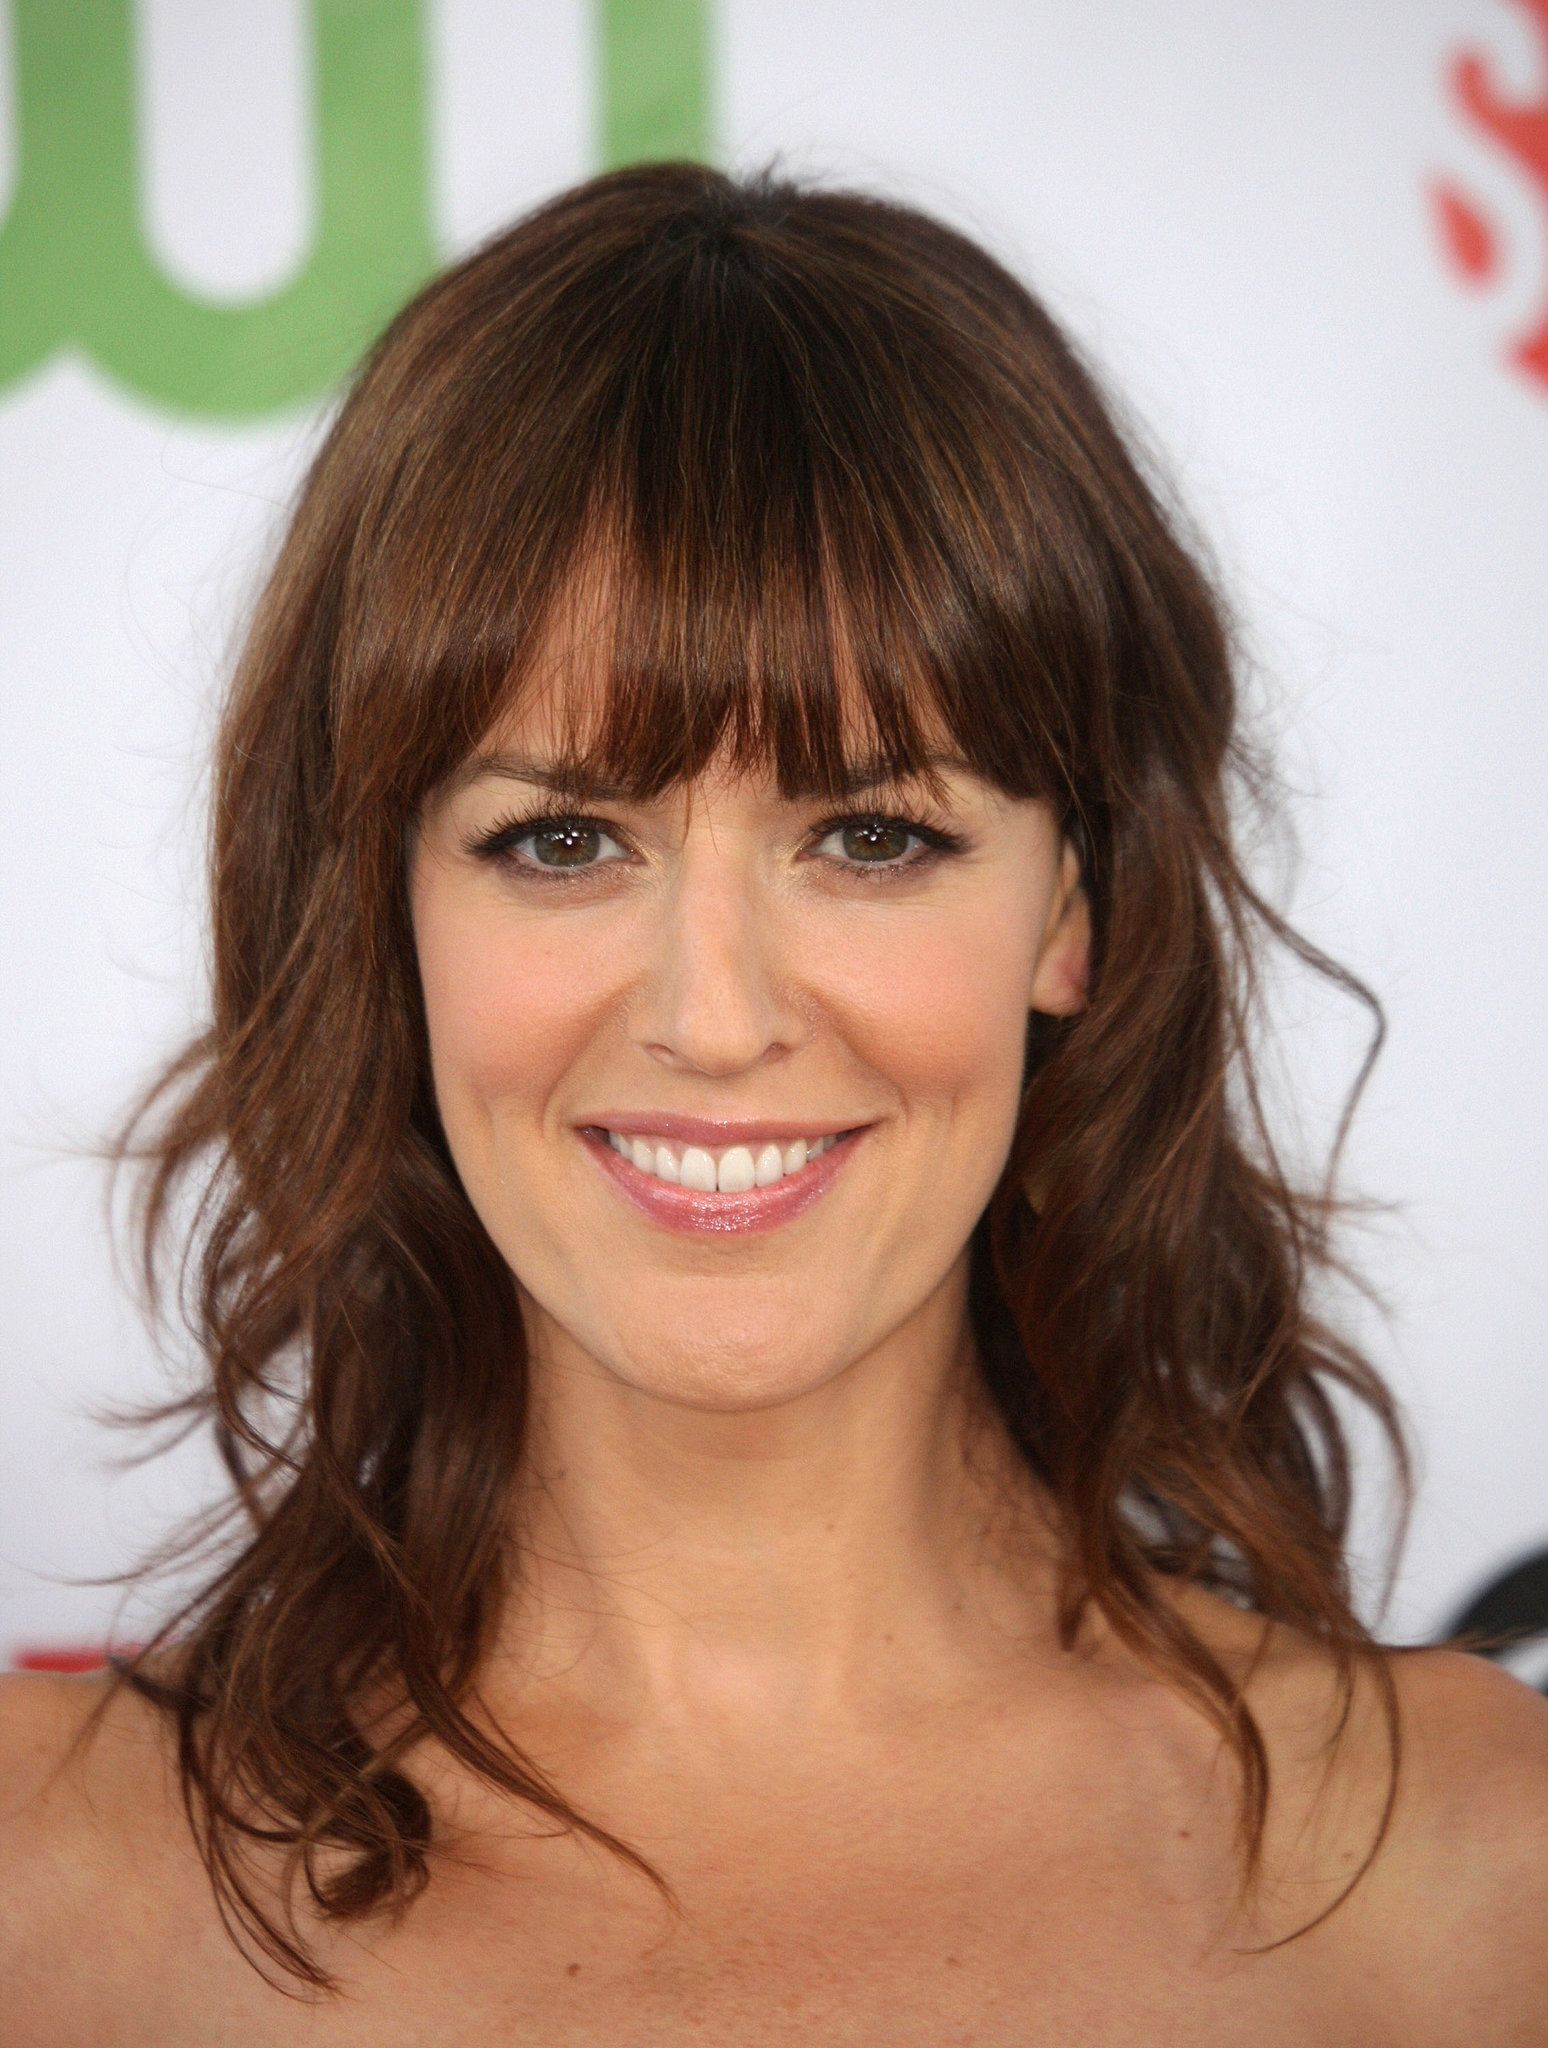 rosemarie dewitt profilerosemarie dewitt instagram, rosemarie dewitt imdb, rosemarie dewitt profile, rosemarie dewitt ron livingston, rosemarie dewitt, rosemarie dewitt daughter, rosemarie dewitt movies, rosemarie dewitt nudography, rosemarie dewitt net worth, rosemarie dewitt nose, rosemarie dewitt the watch, rosemarie dewitt wikifeet